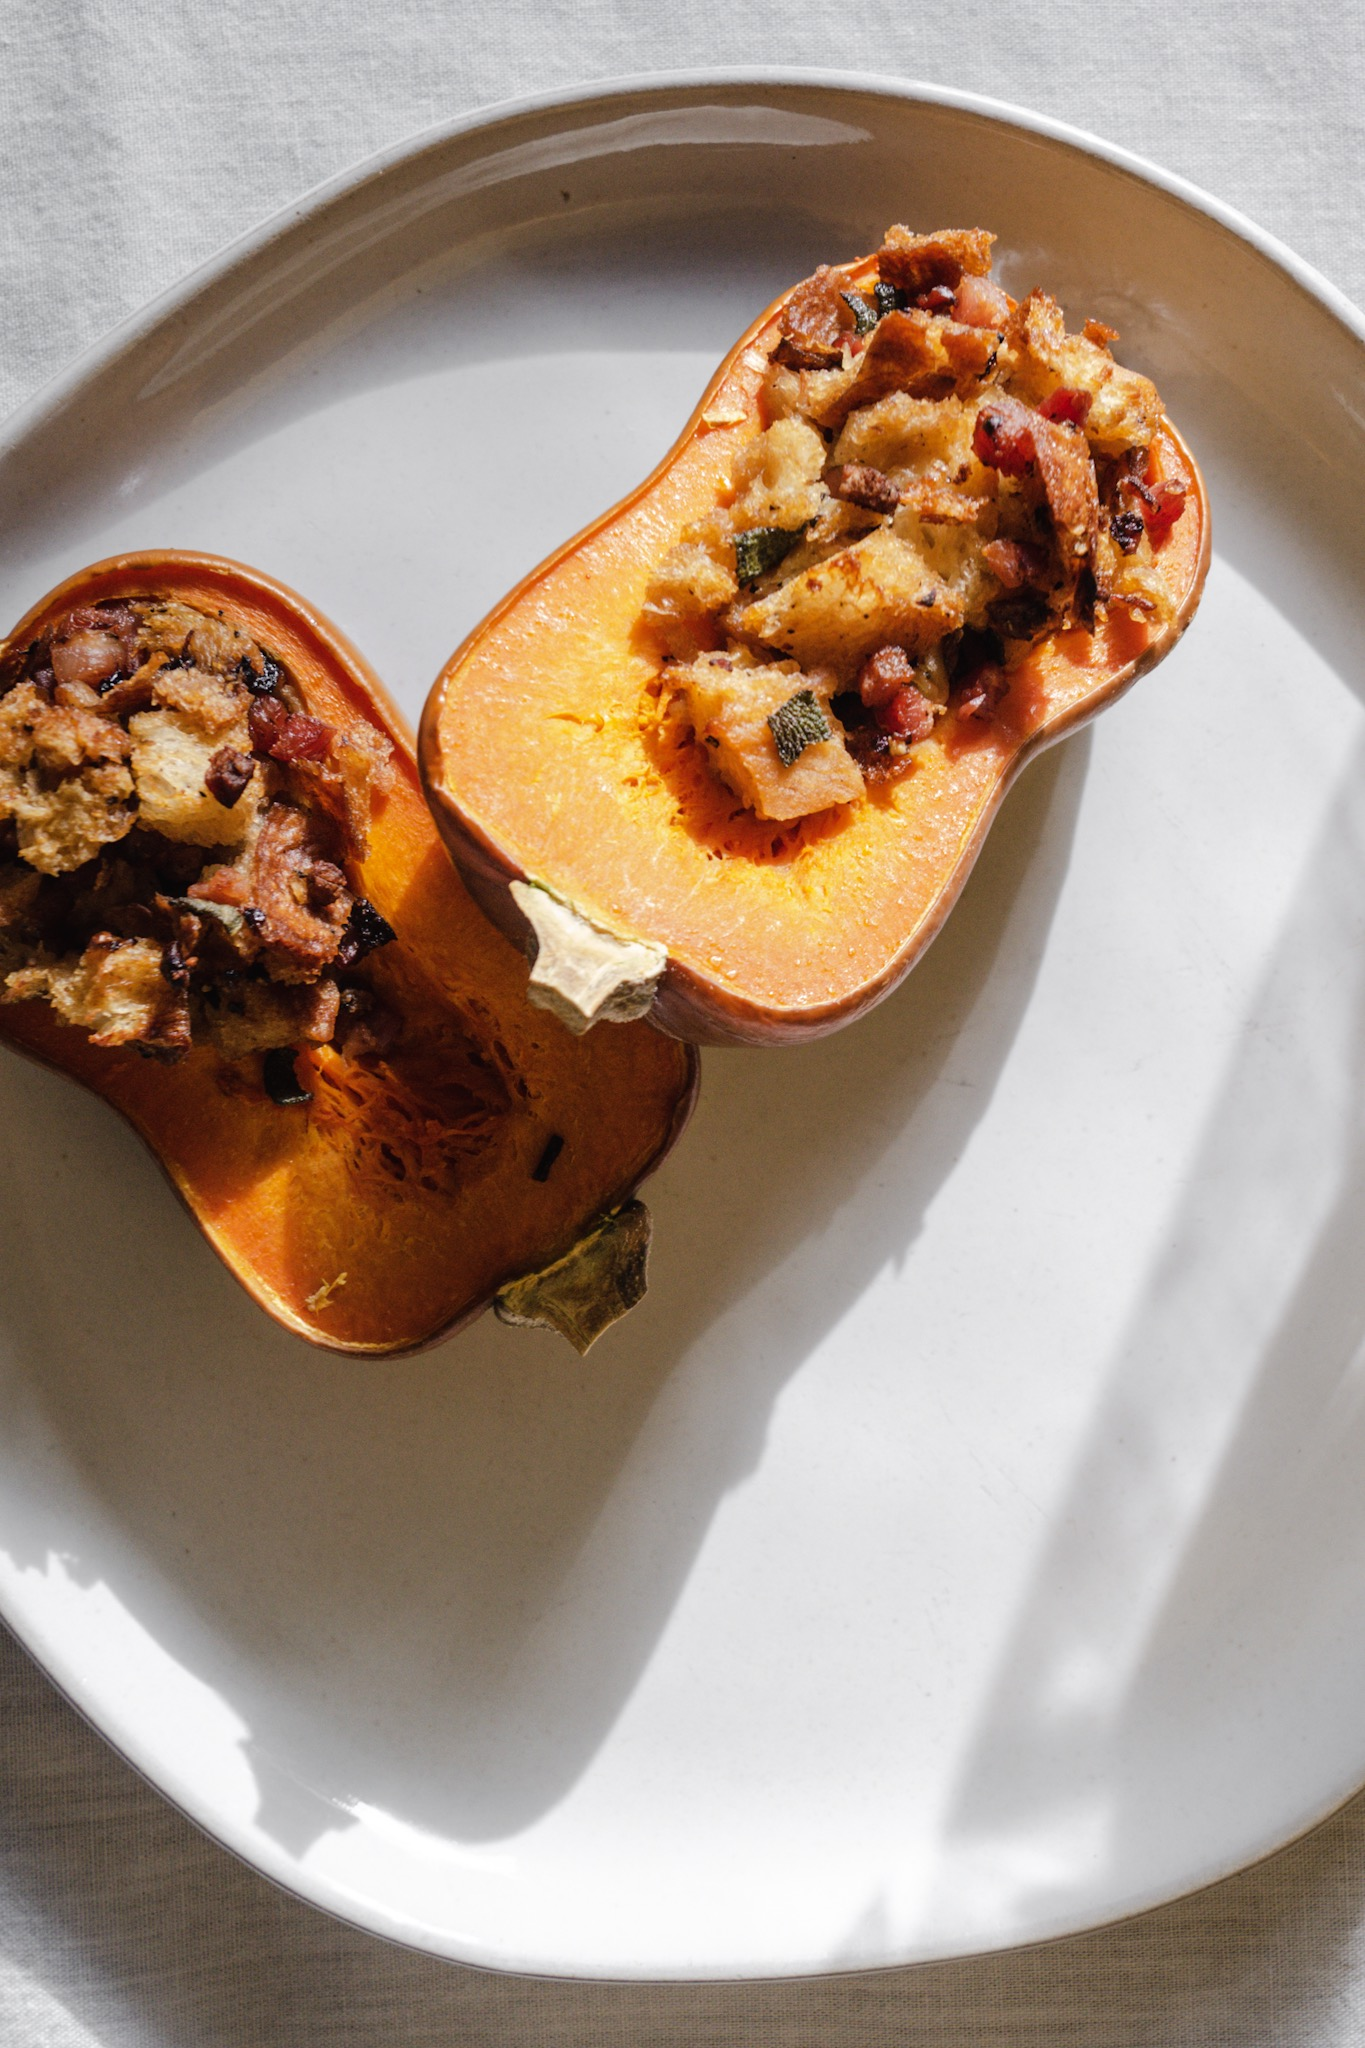 Sage and pancetta stuffing stuffed squash. Fall roasted honeynut squash recipes.